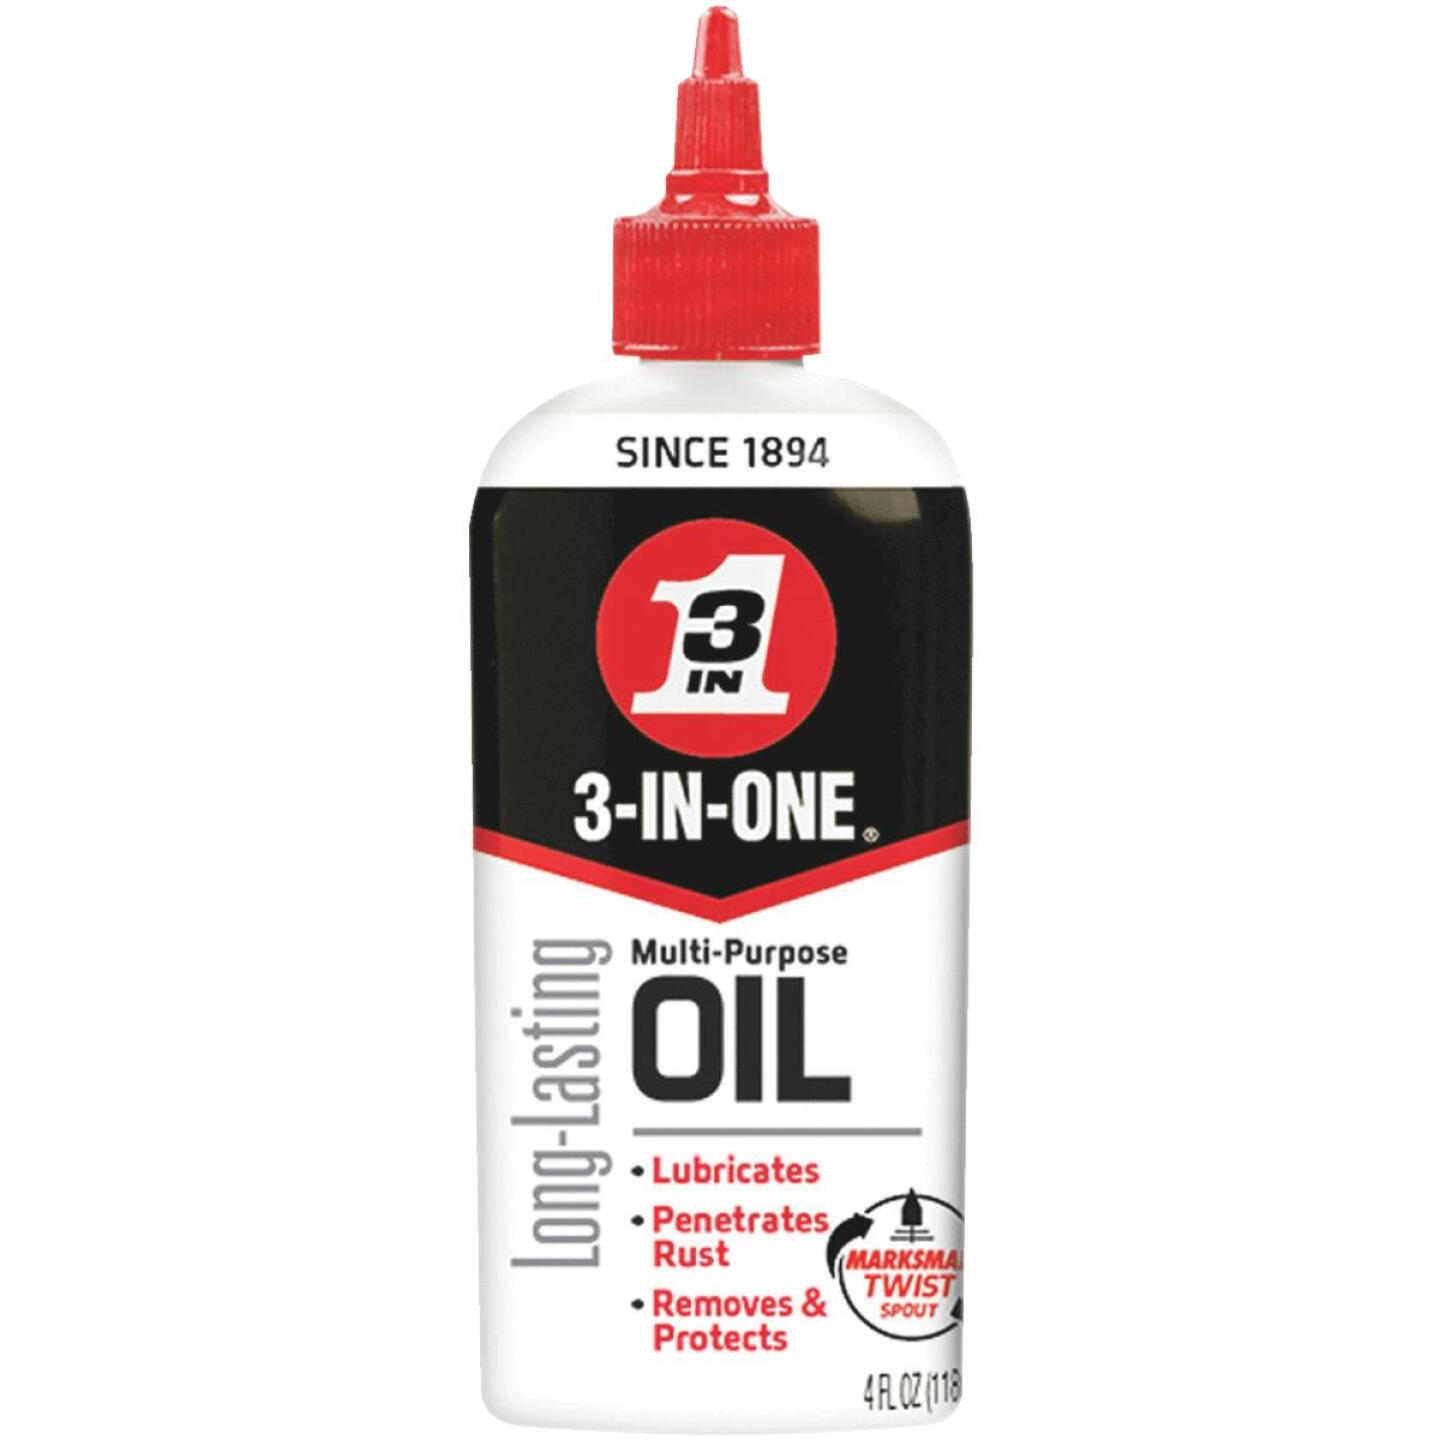 3-IN-ONE 4 Oz. Drip Can Multi-Purpose Lubricant Image 1